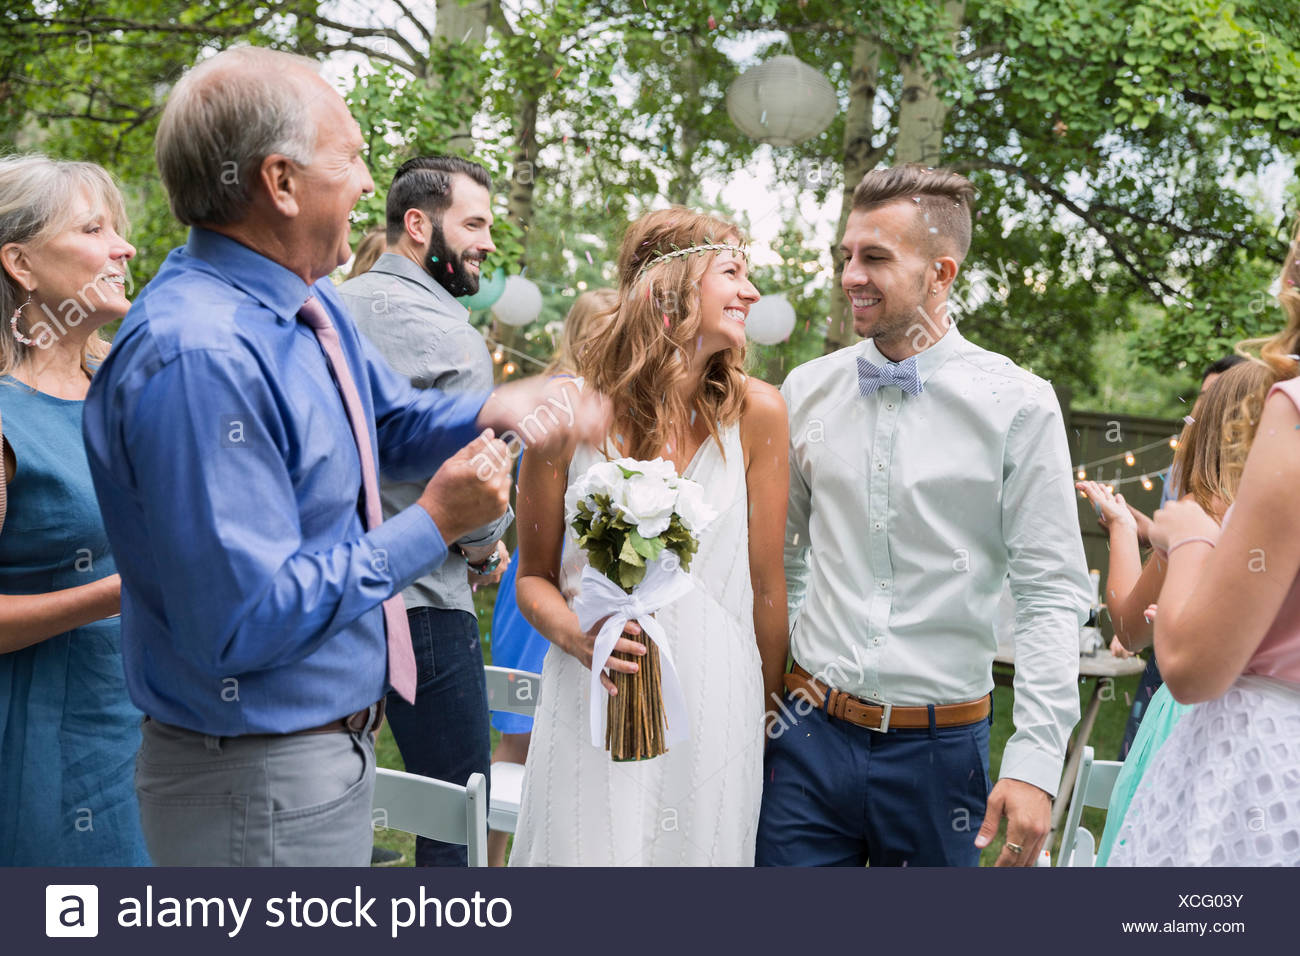 Guests clapping for bride and groom backyard wedding - Stock Image